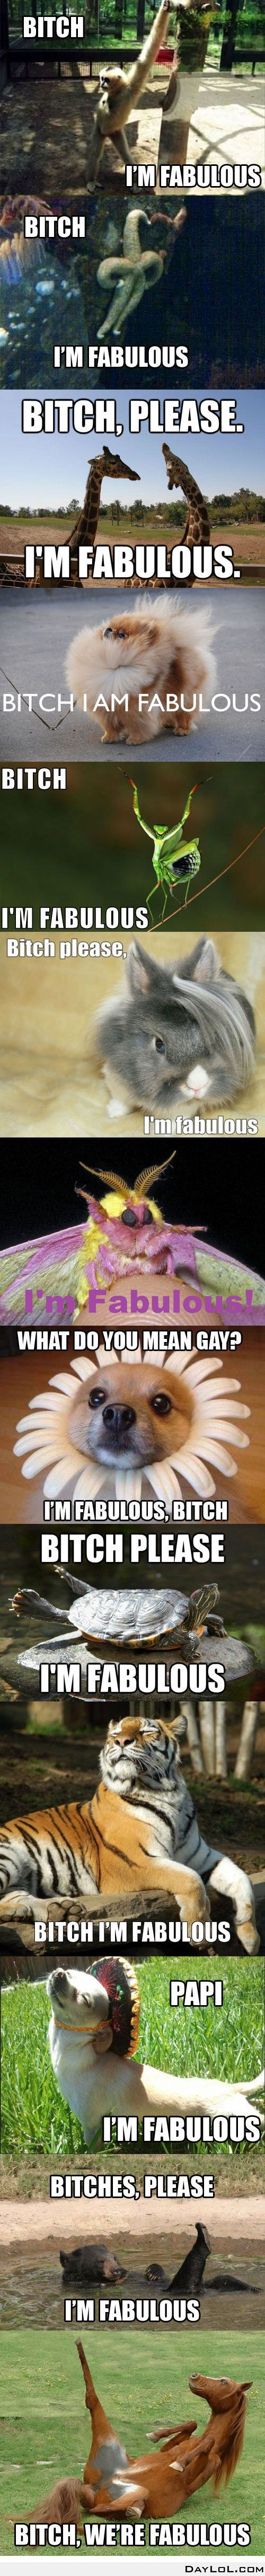 Ugghhh I love the diva in these animals. LOVE.: Bitch In, I M Fabulous, Fabulous Animals, Im Fabulous, Funny Stuff, Funny Animal, I'M Fabulous